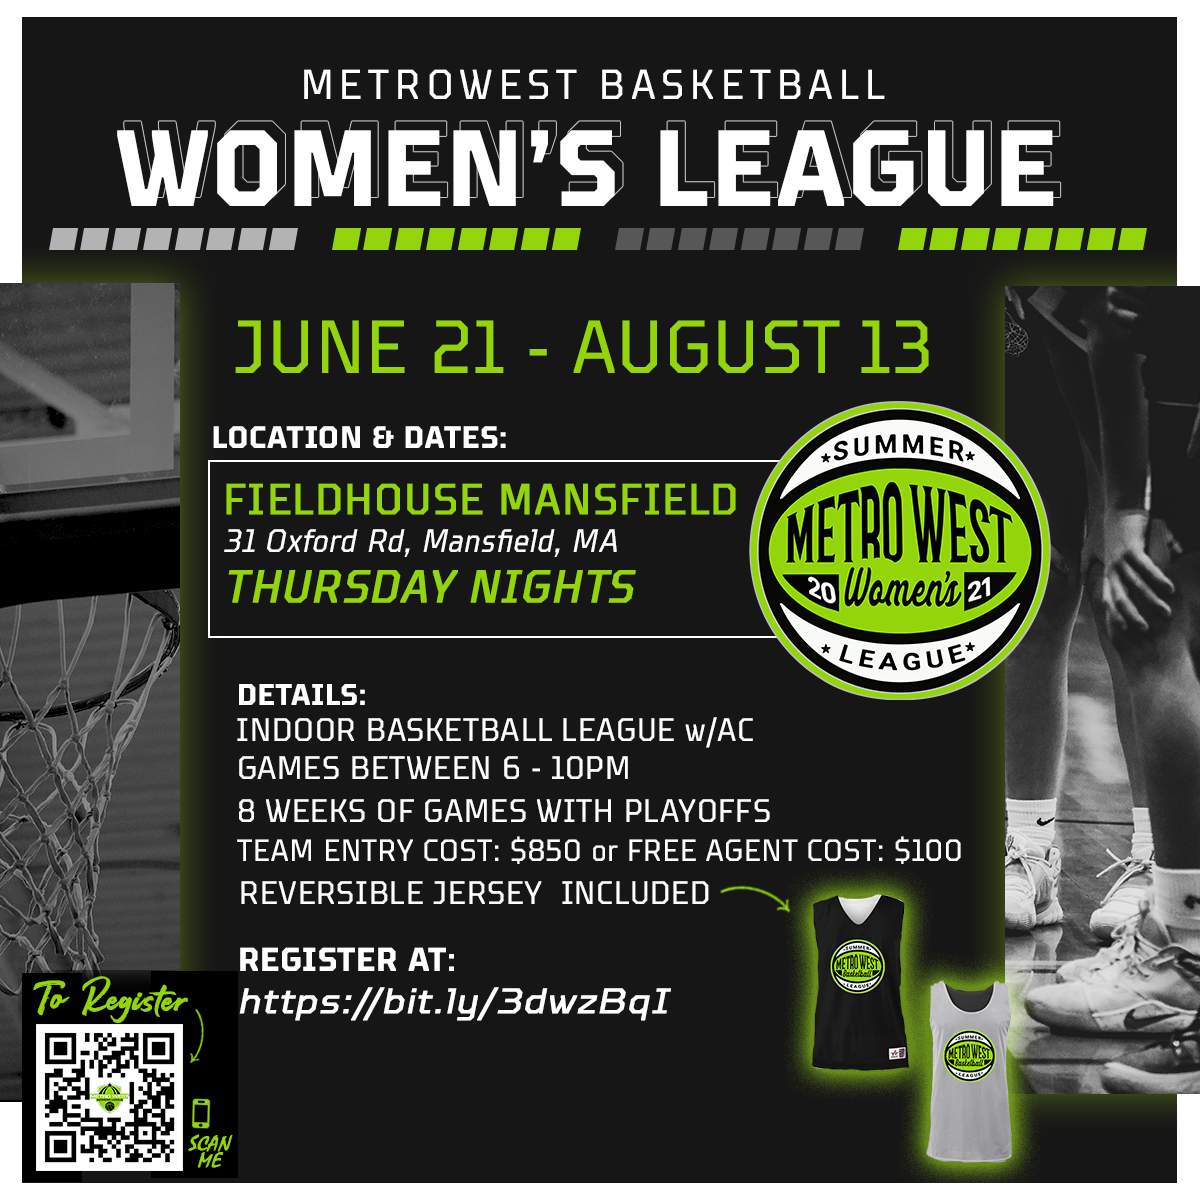 NewWomensLeagueSummerProgramming_21Women's League